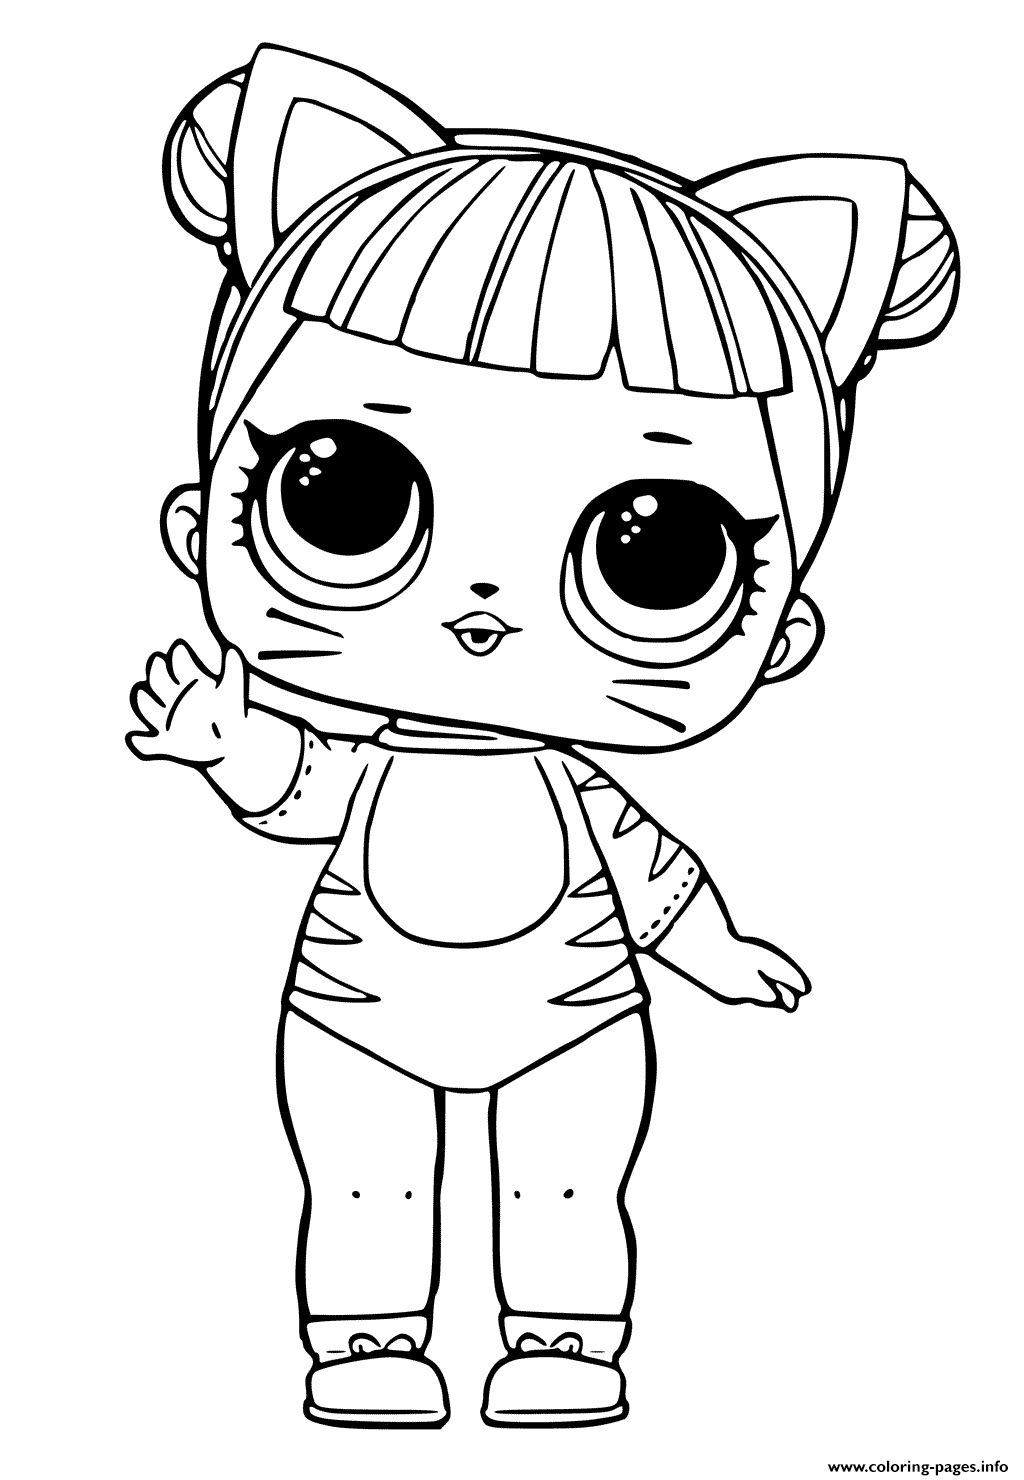 Lol Easter Coloring Pages Coloring Pages Allow Kids To Accompany Their Favorite Characters On An Advent Baby Coloring Pages Kitty Coloring Cat Coloring Page